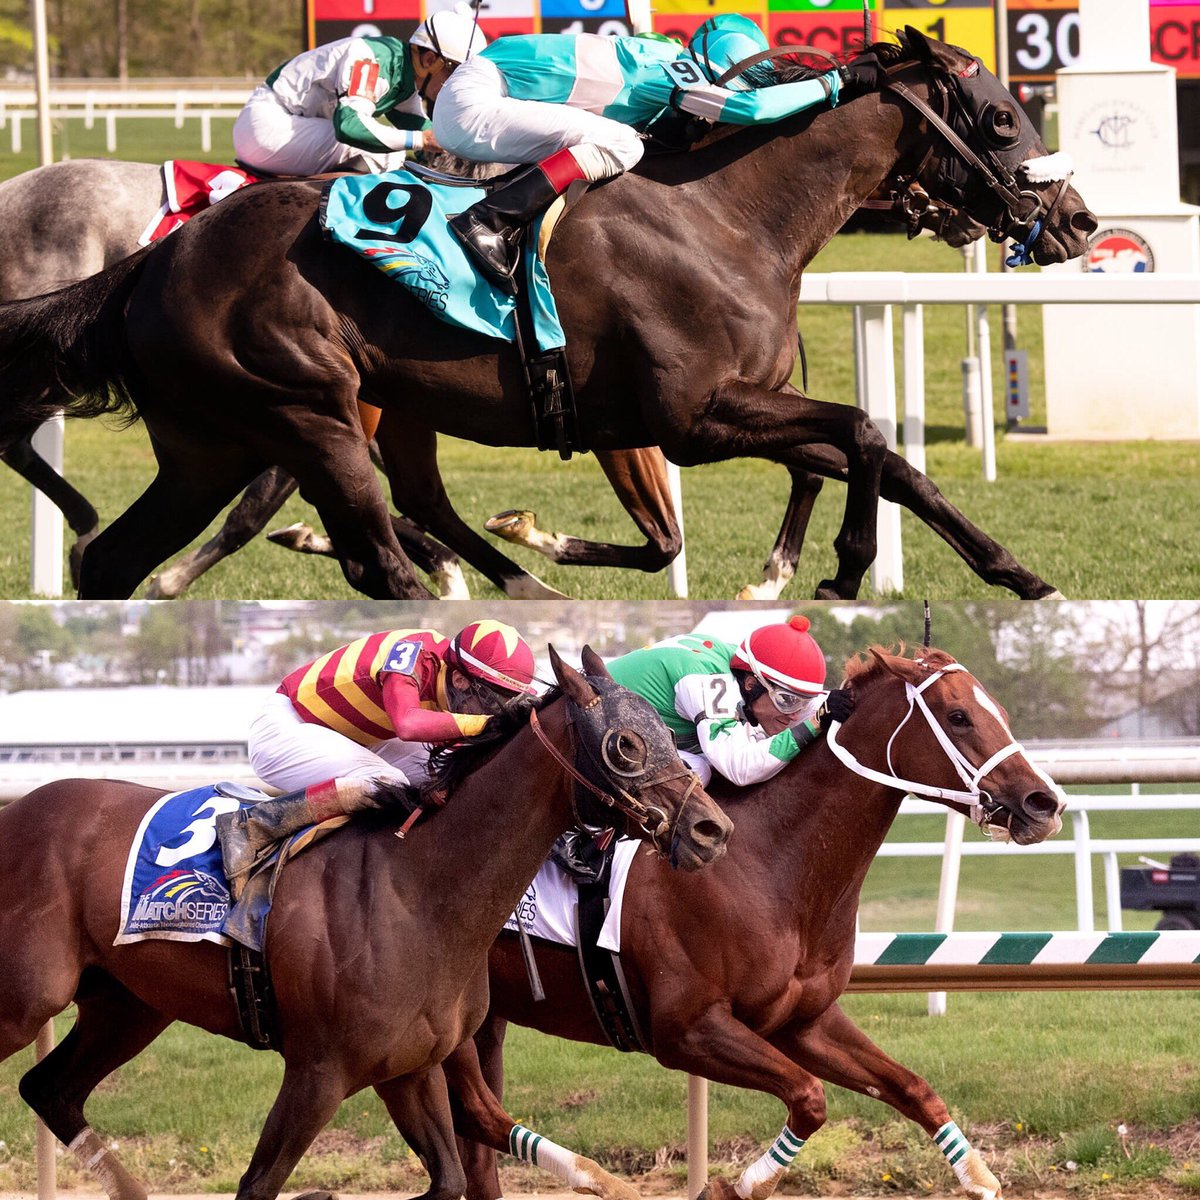 test Twitter Media - BSW private purchases finish 1st and 2nd (each by a👃🏼) in Dahlia and Primonetta Stakes. Congrats to the super connections: SECRET MESSAGE (Madaket, Herrick, @6ErikJohnson, Rebhan, Carroll, Bouchey). CAIRENN (@uscgatsby, @ColonelKisber, Madaket). @GrahamMotion / @trevormmccarthy https://t.co/lYRaz7Jz0f